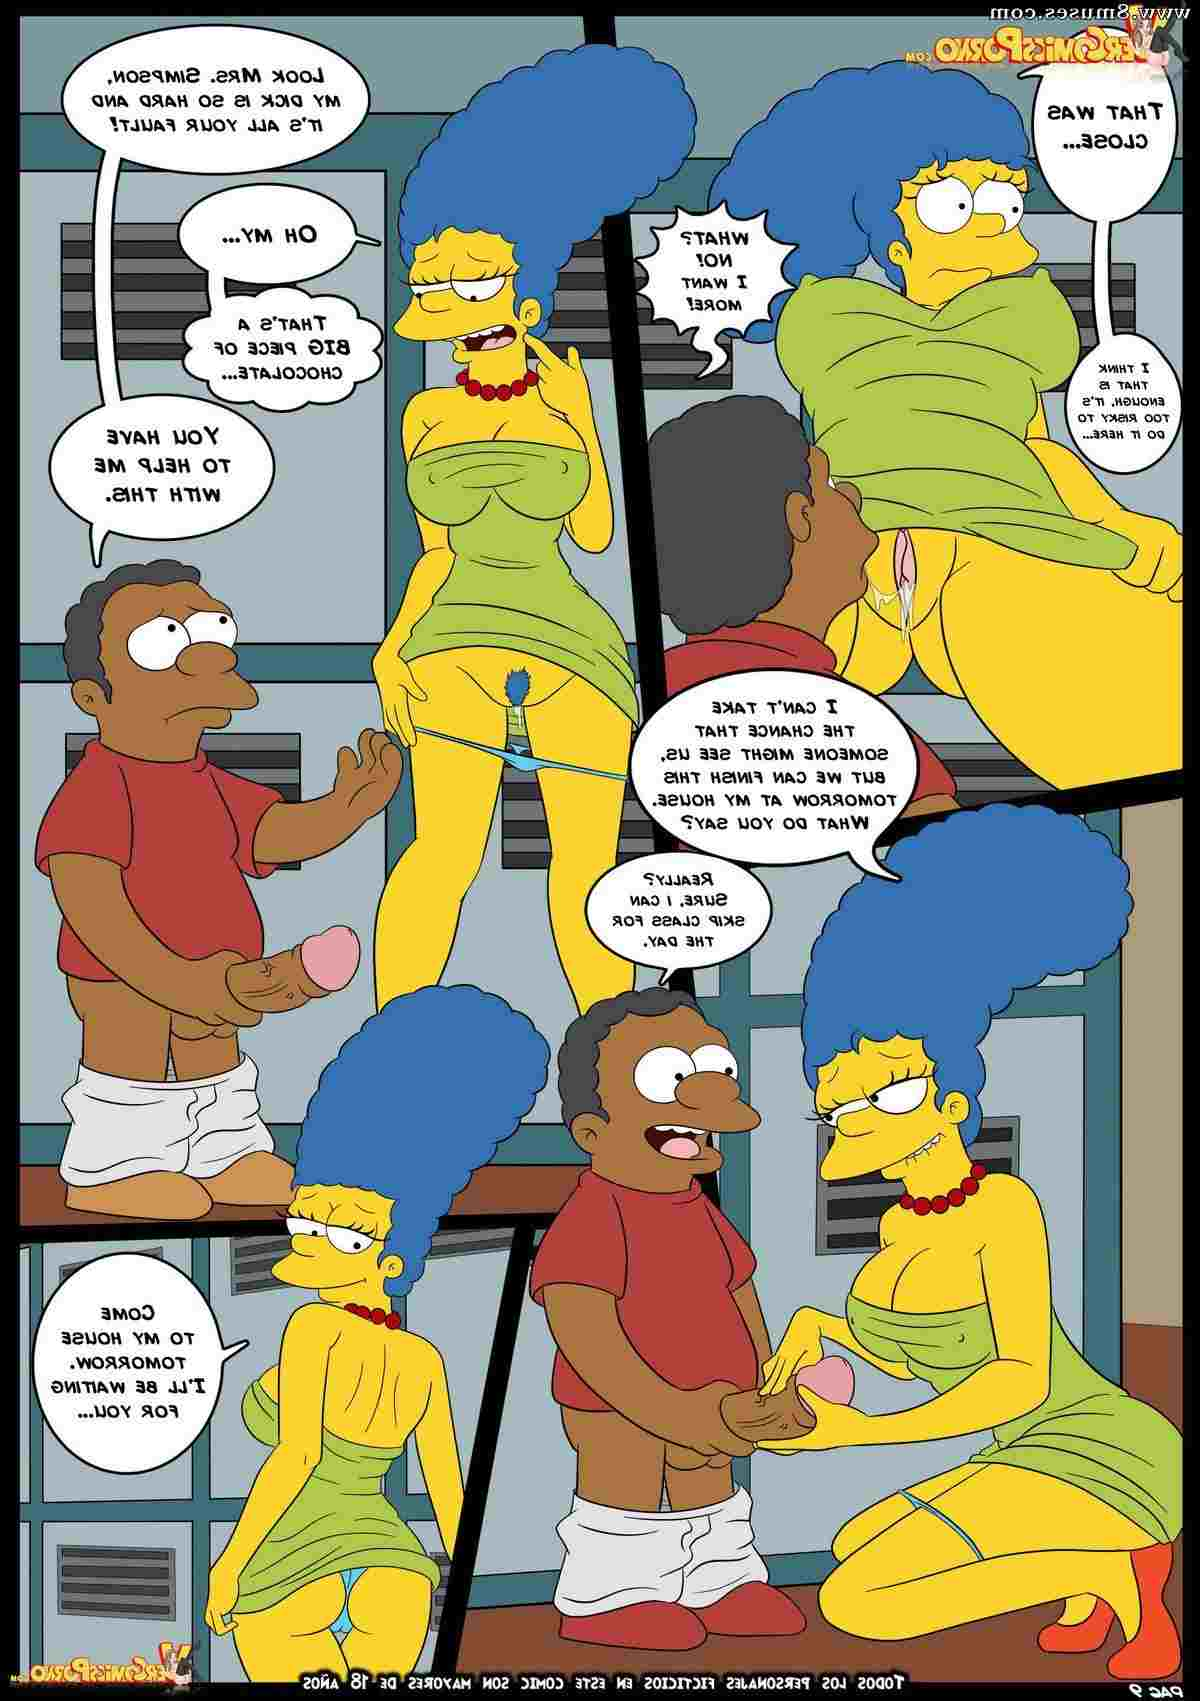 Croc-Comics/The-Simpsons-Love-for-the-Bully The_Simpsons_-_Love_for_the_Bully__8muses_-_Sex_and_Porn_Comics_10.jpg